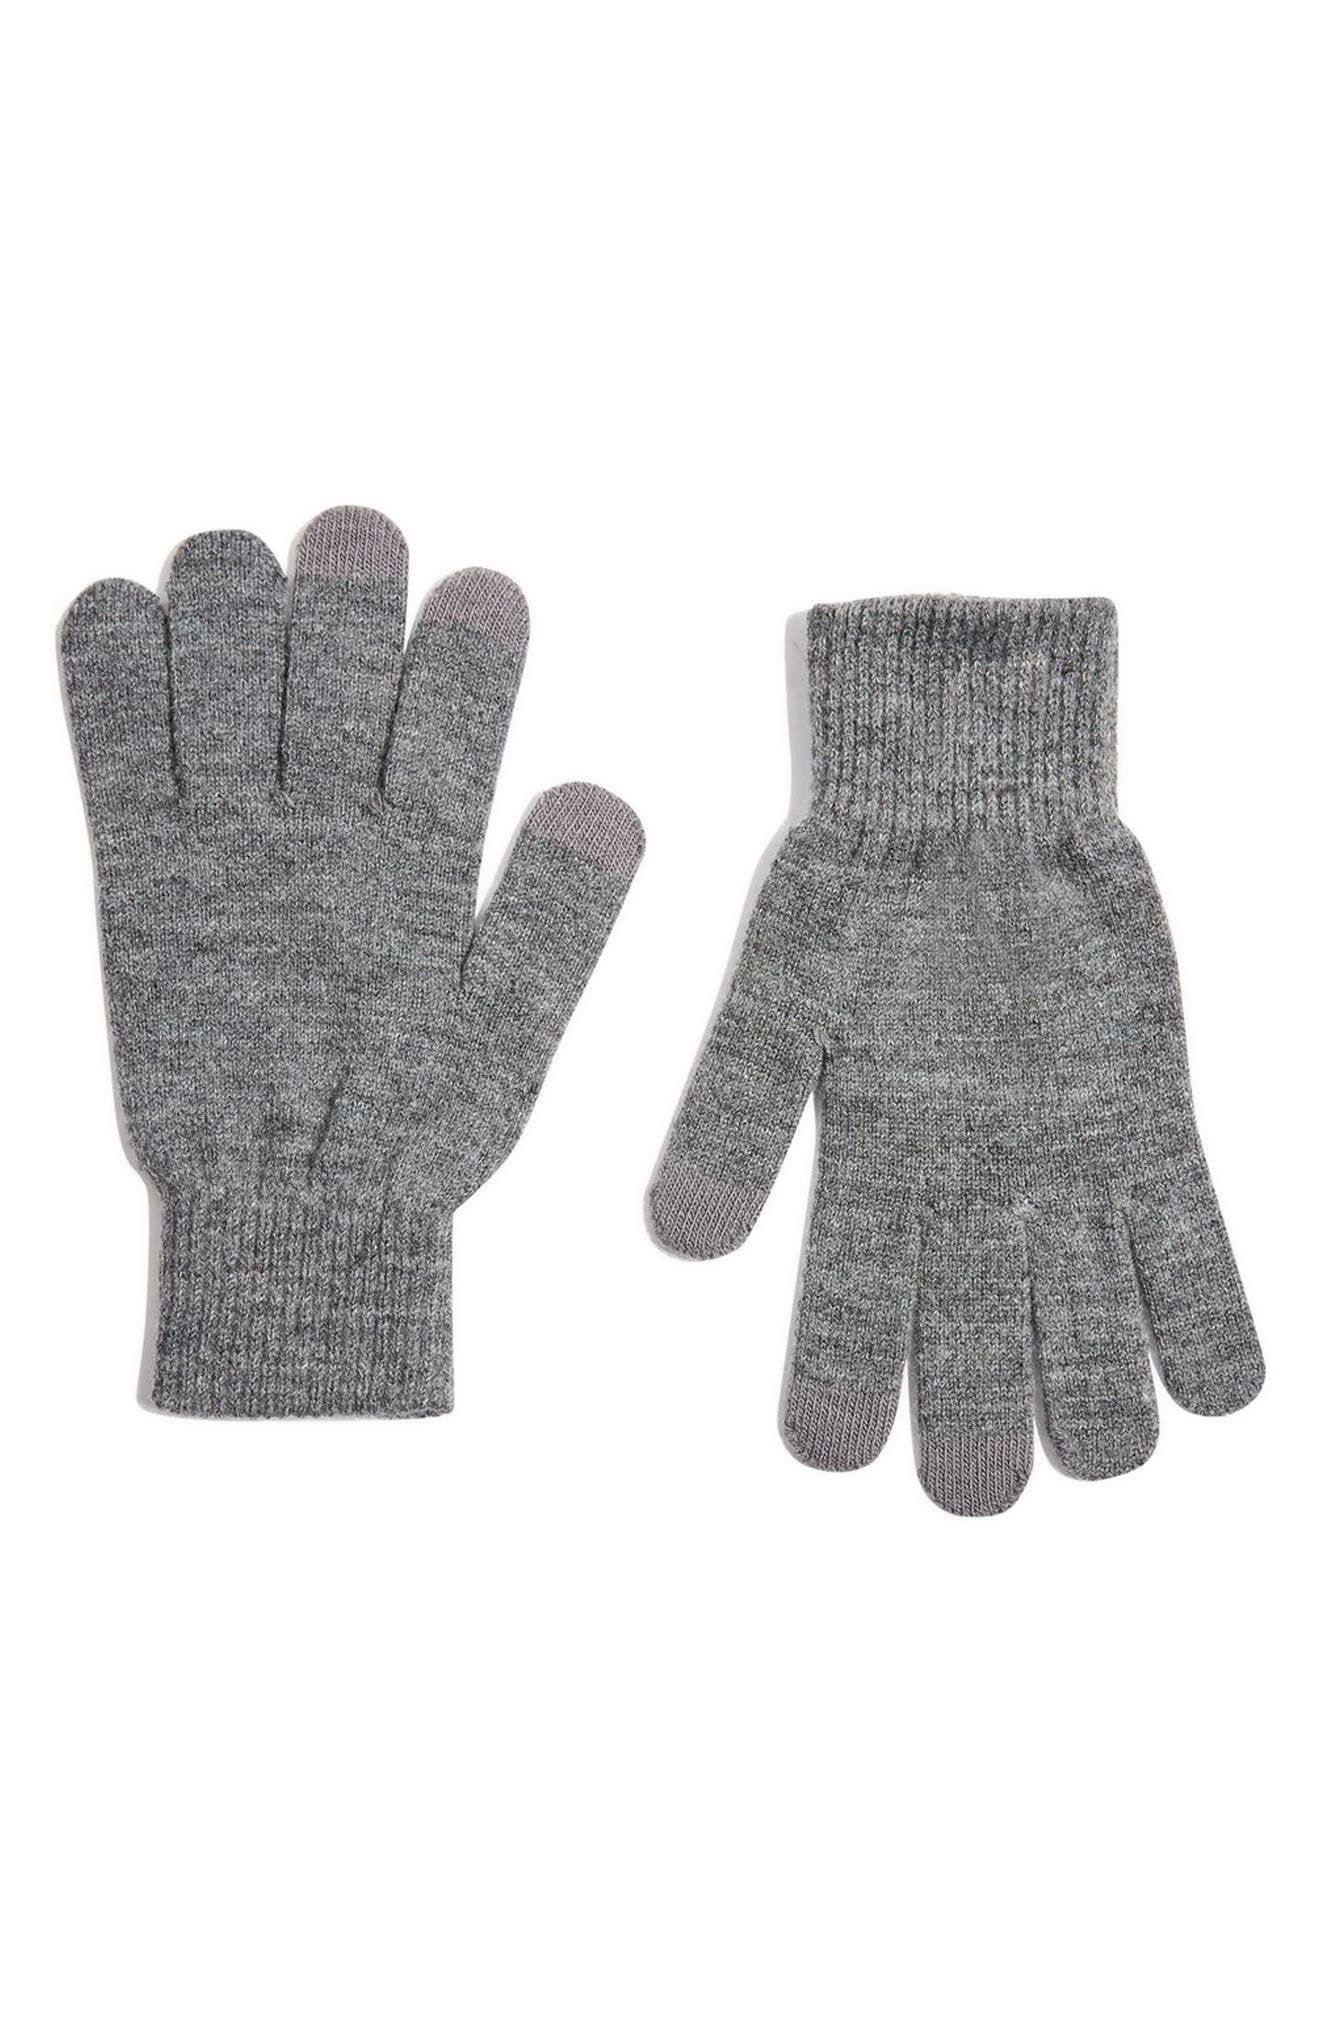 Alternate Image 1 Selected - Topshop Core Winter Tech Gloves